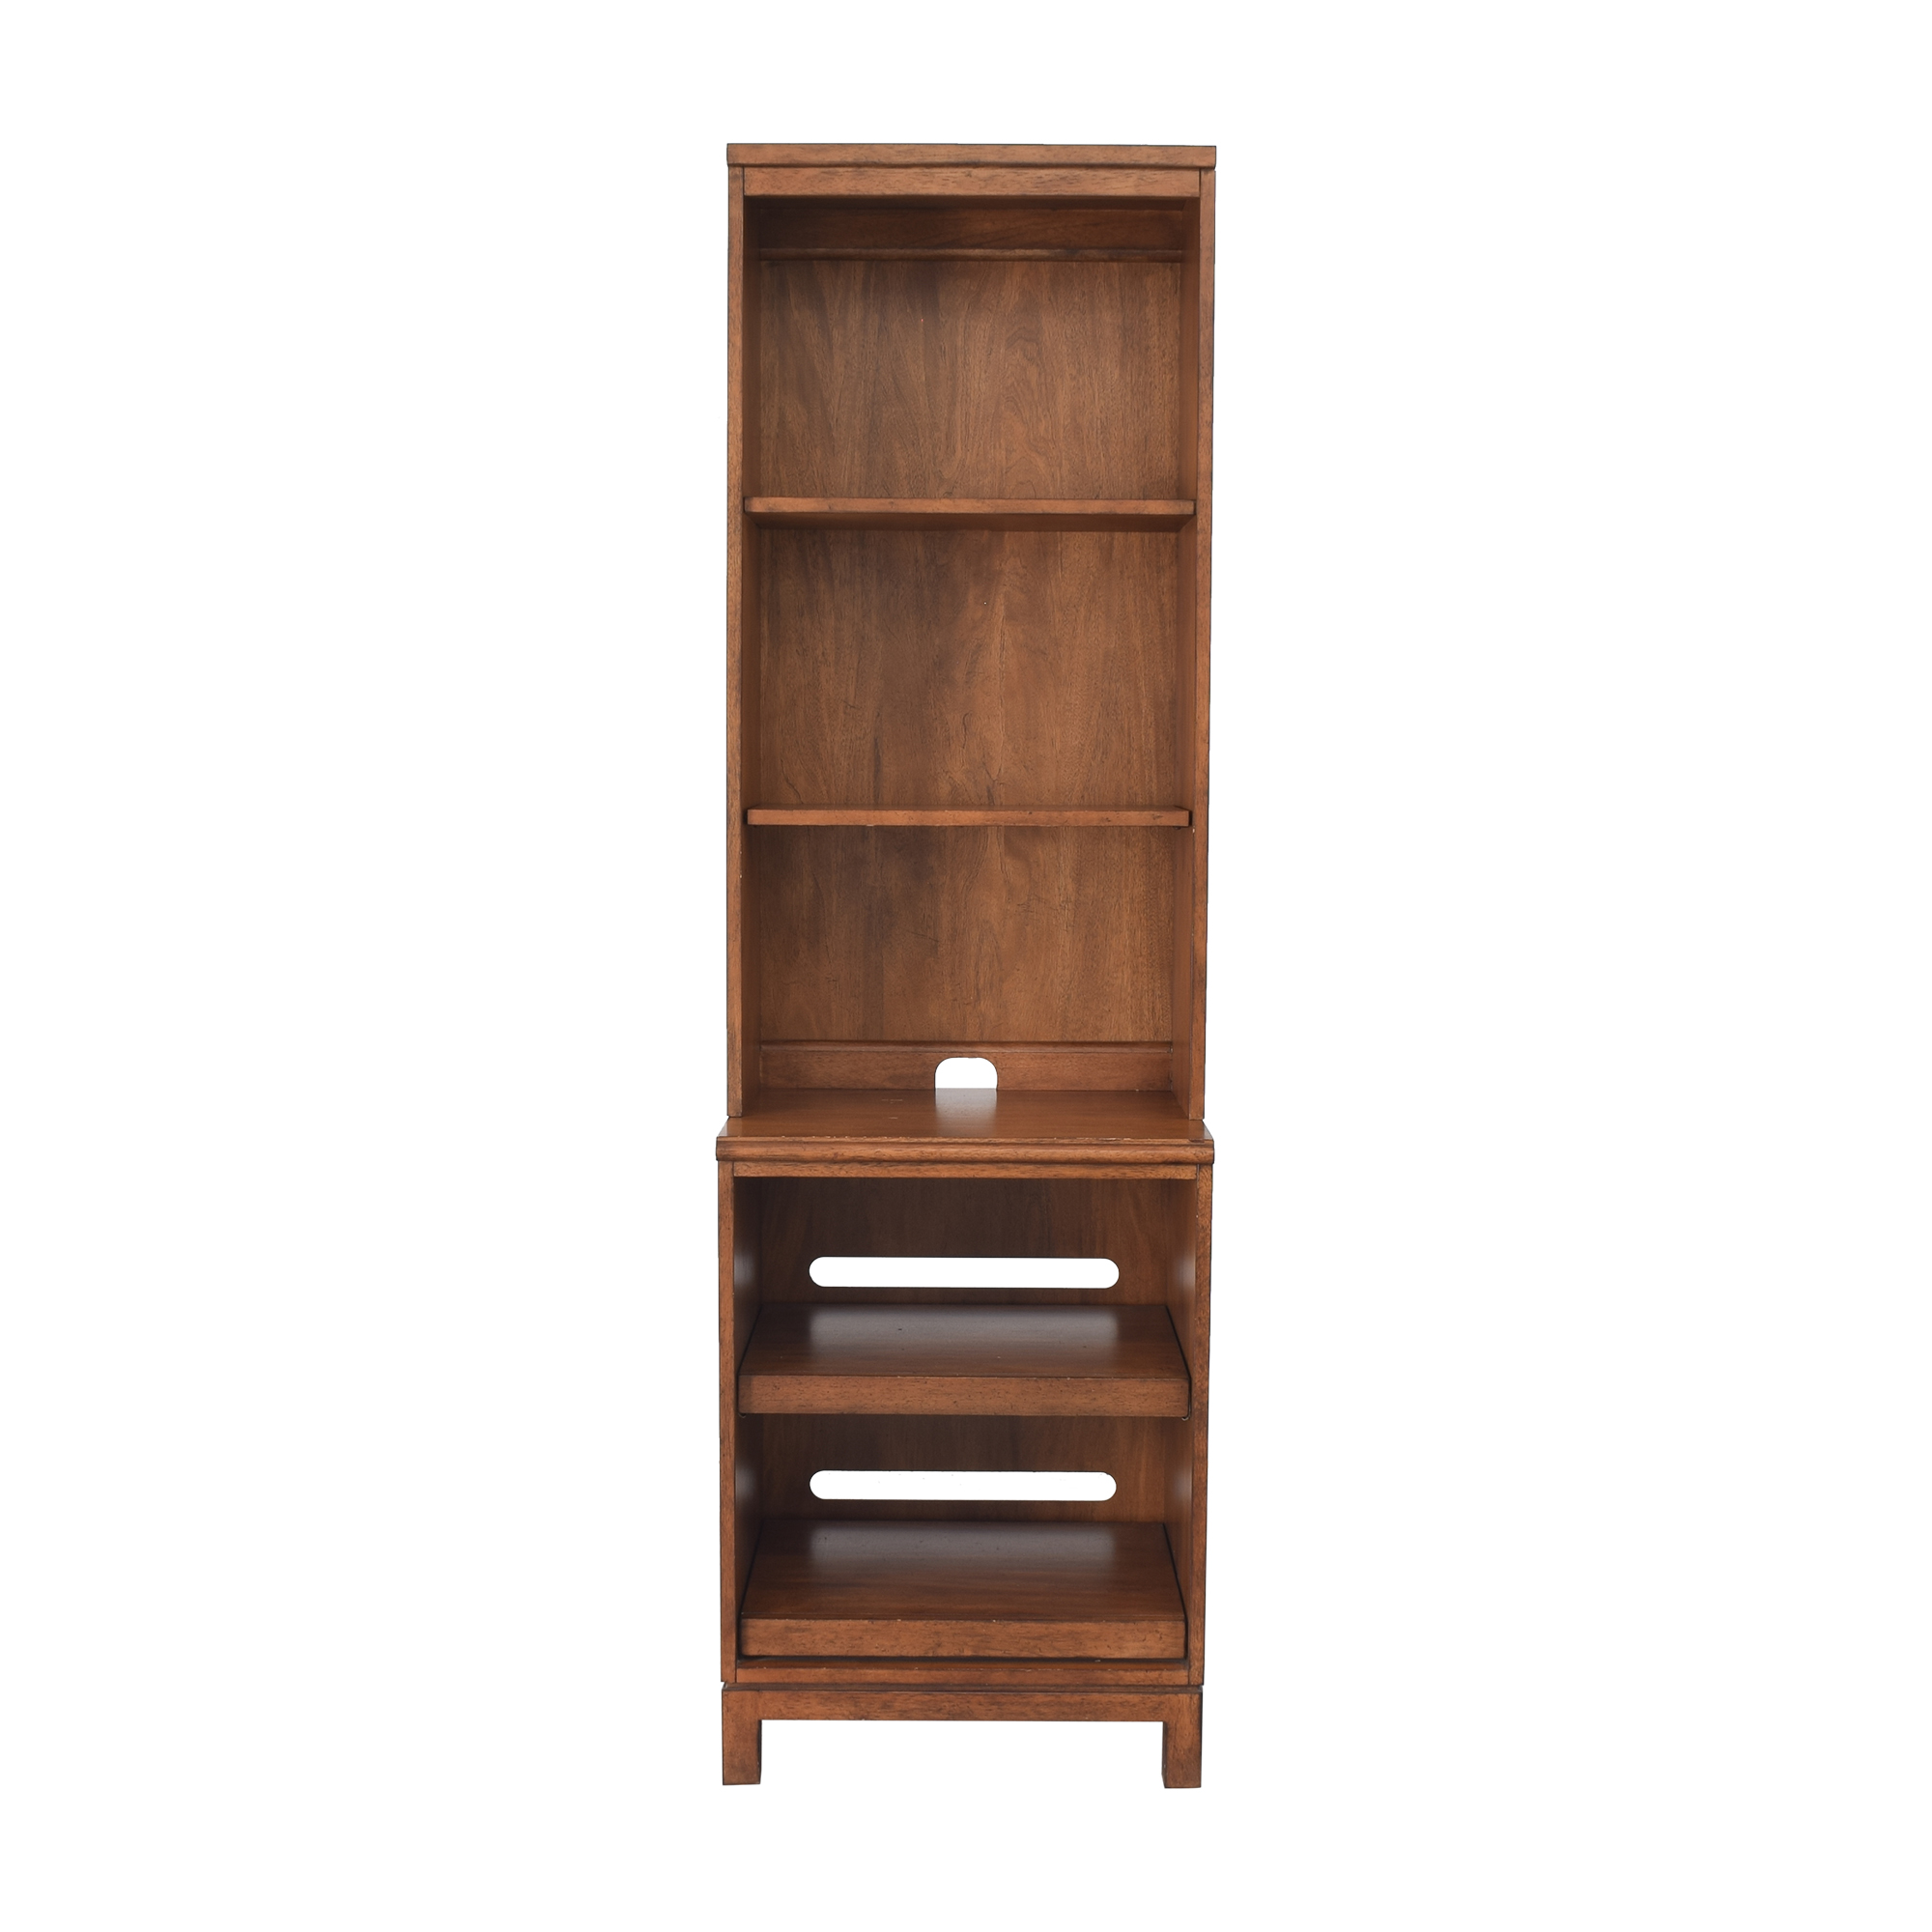 shop Ethan Allen Bookcase with Extendable Shelves Ethan Allen Bookcases & Shelving